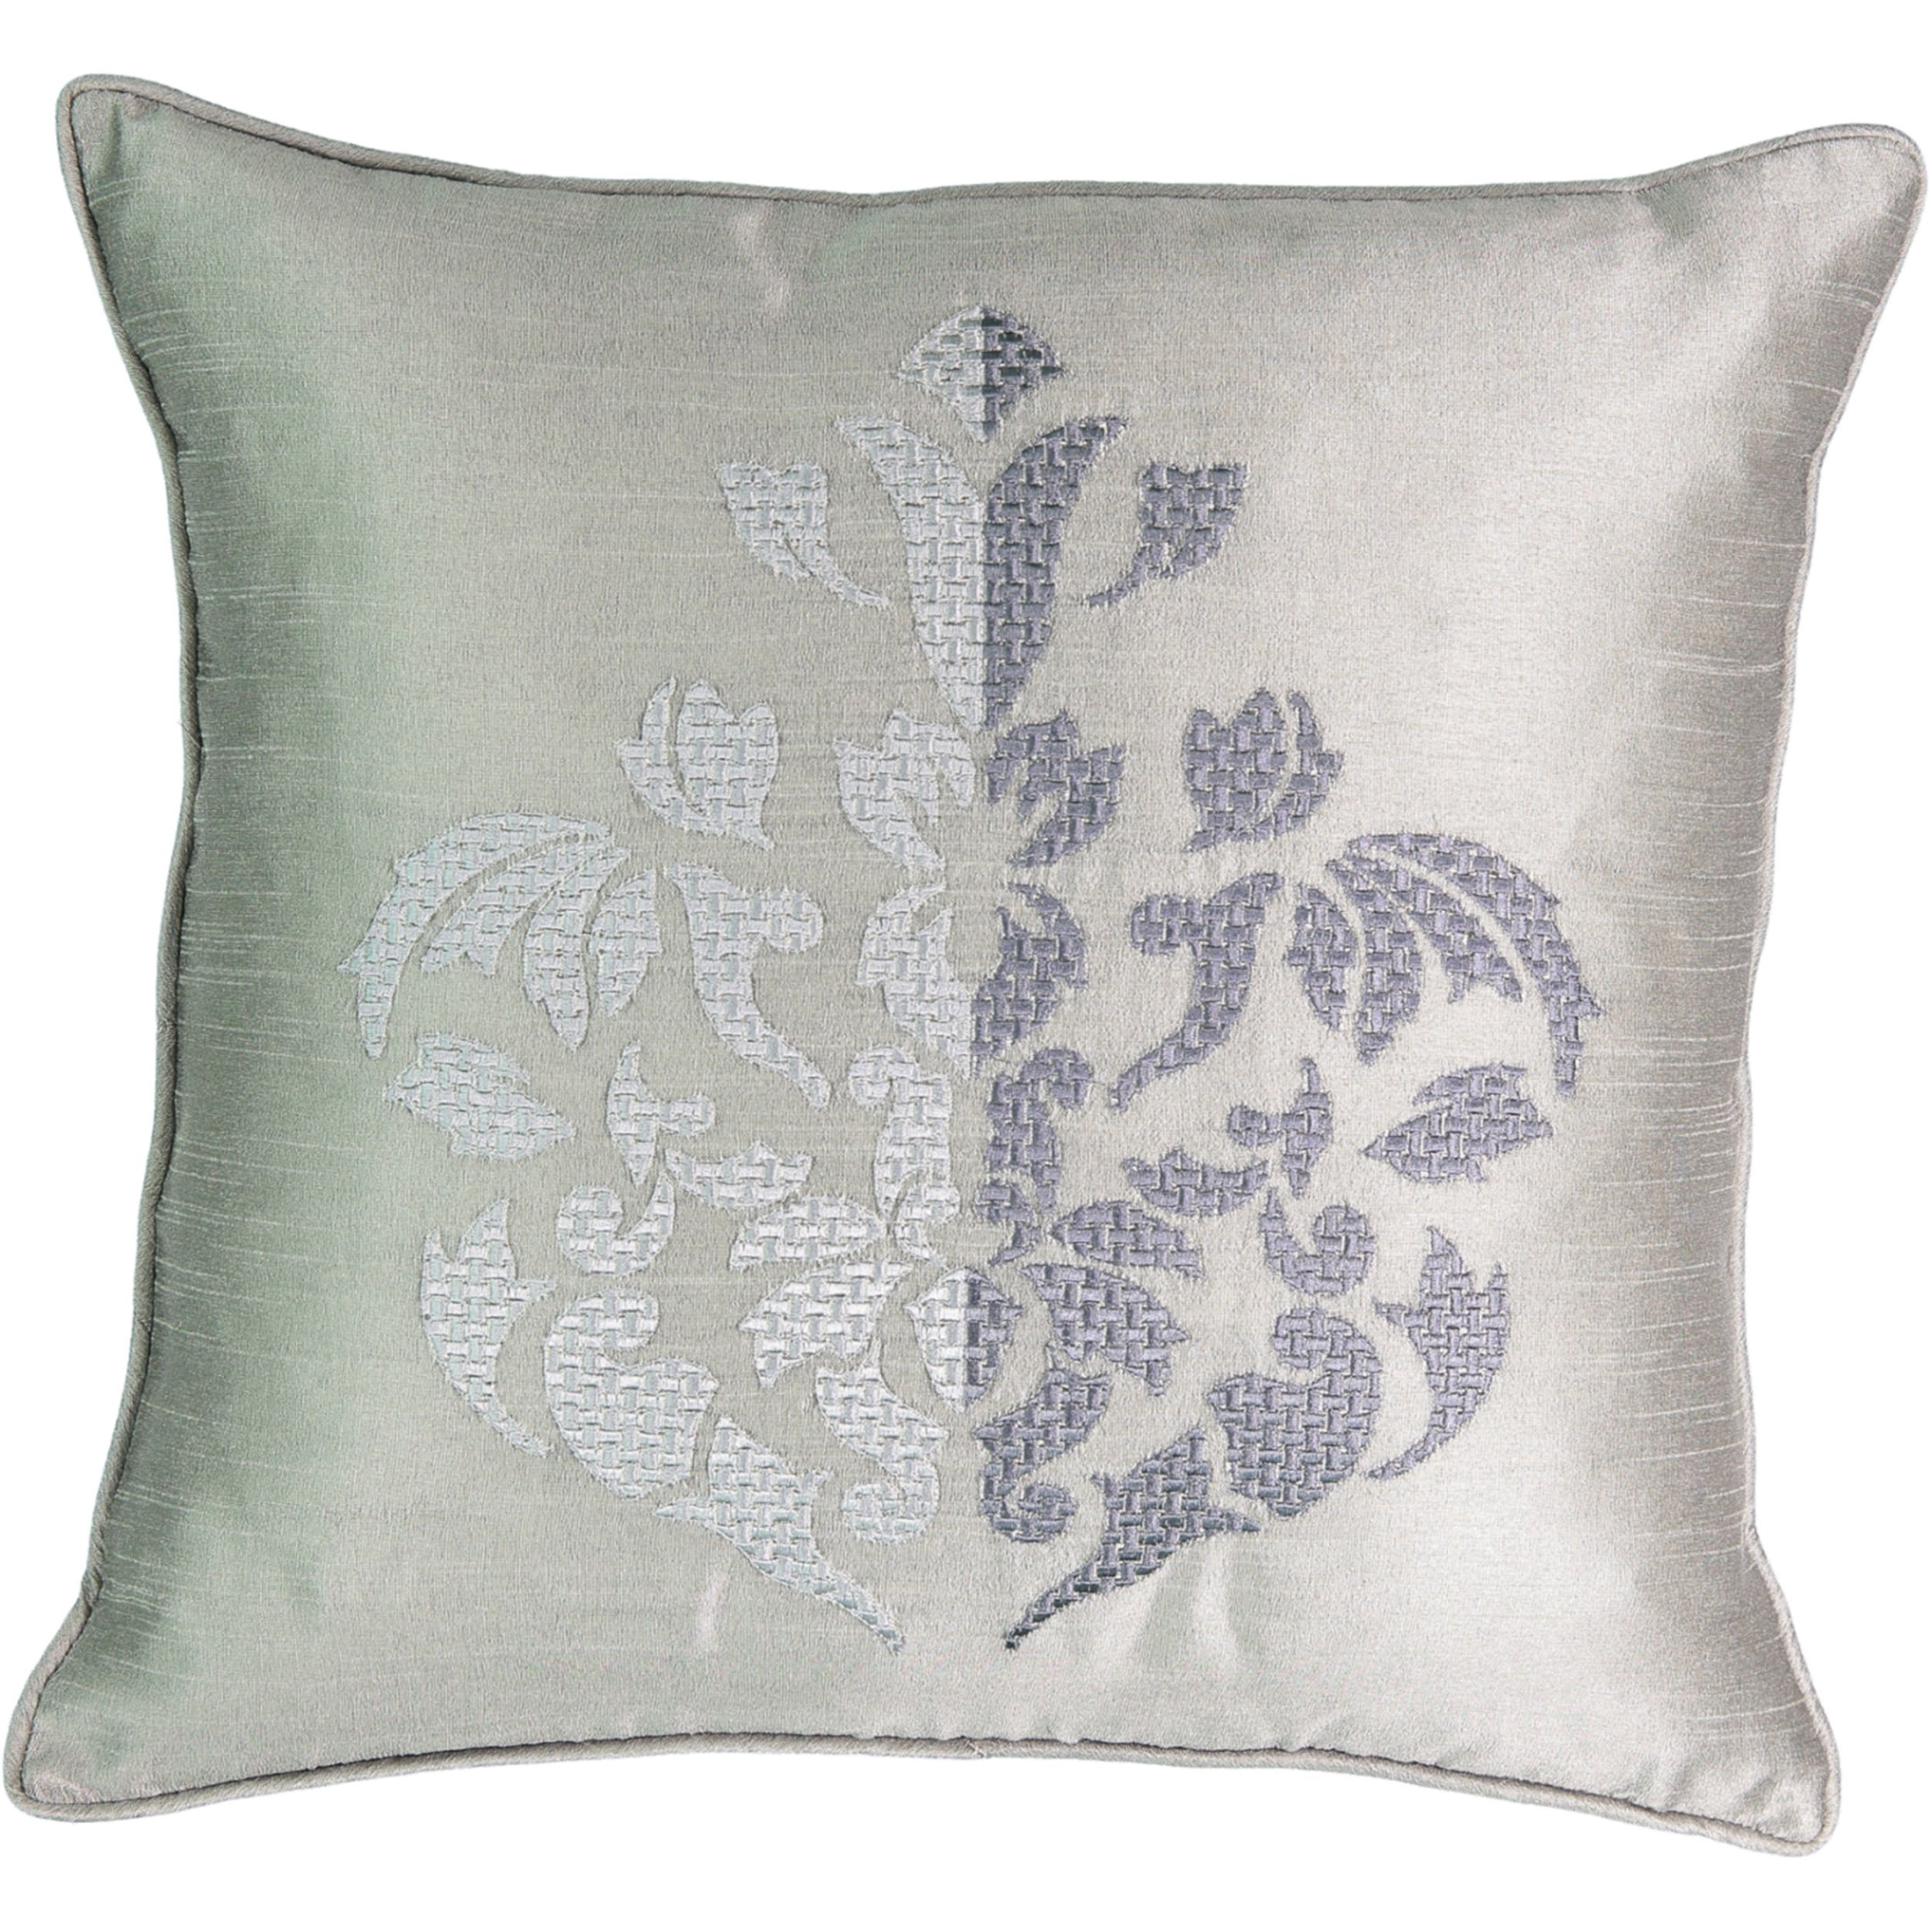 Beautyrest 16324018X018PGA Chacenay 18-inch by 18-inch Embroidered Decorative Pillow, Paloma Grey